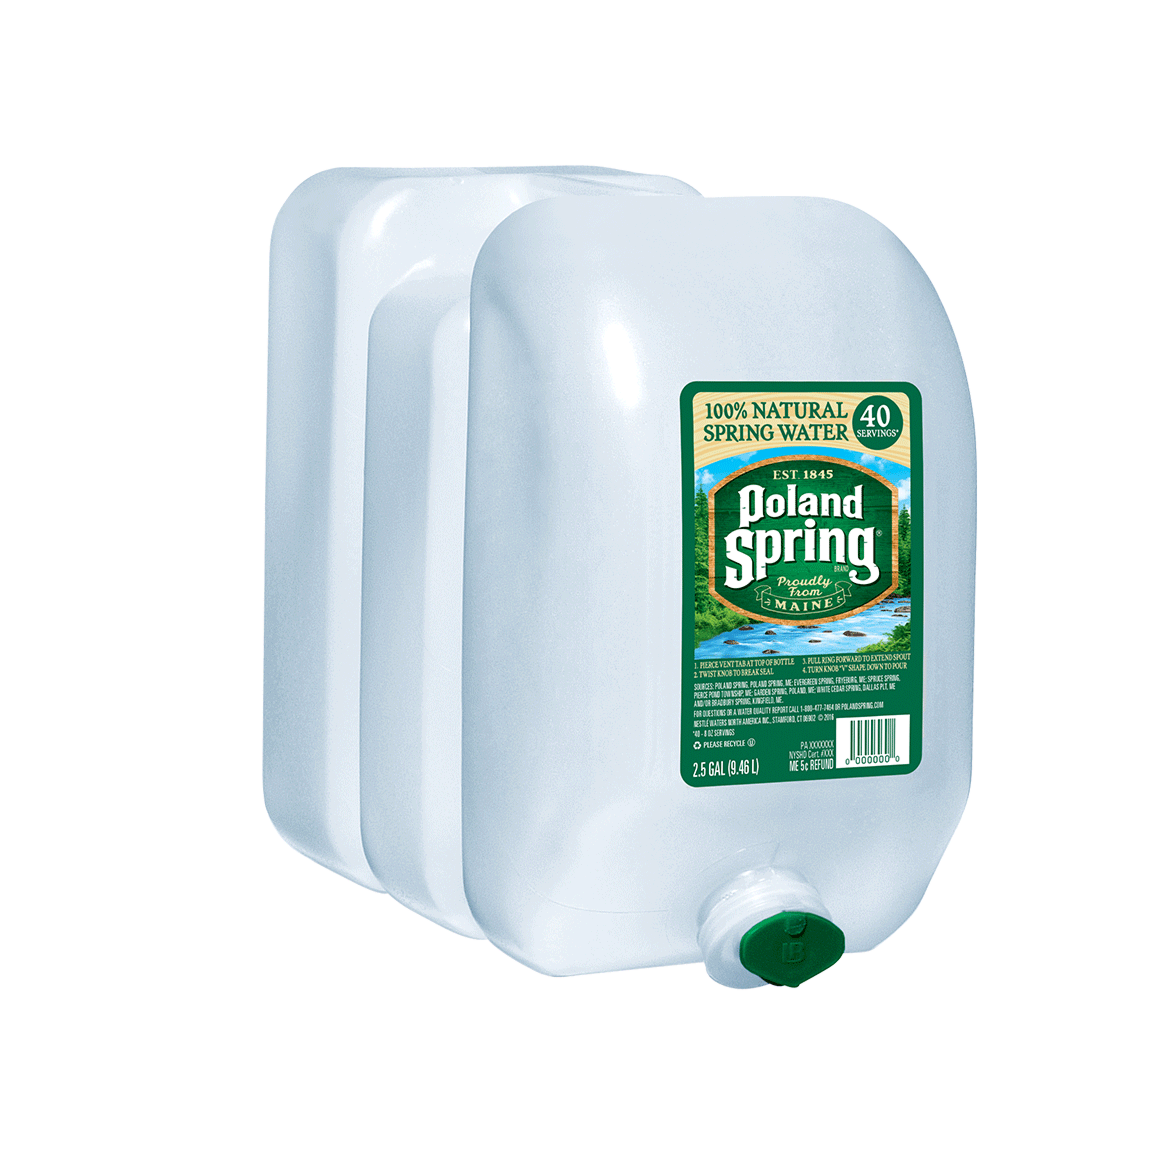 Poland Spring® 100% Natural Spring Water